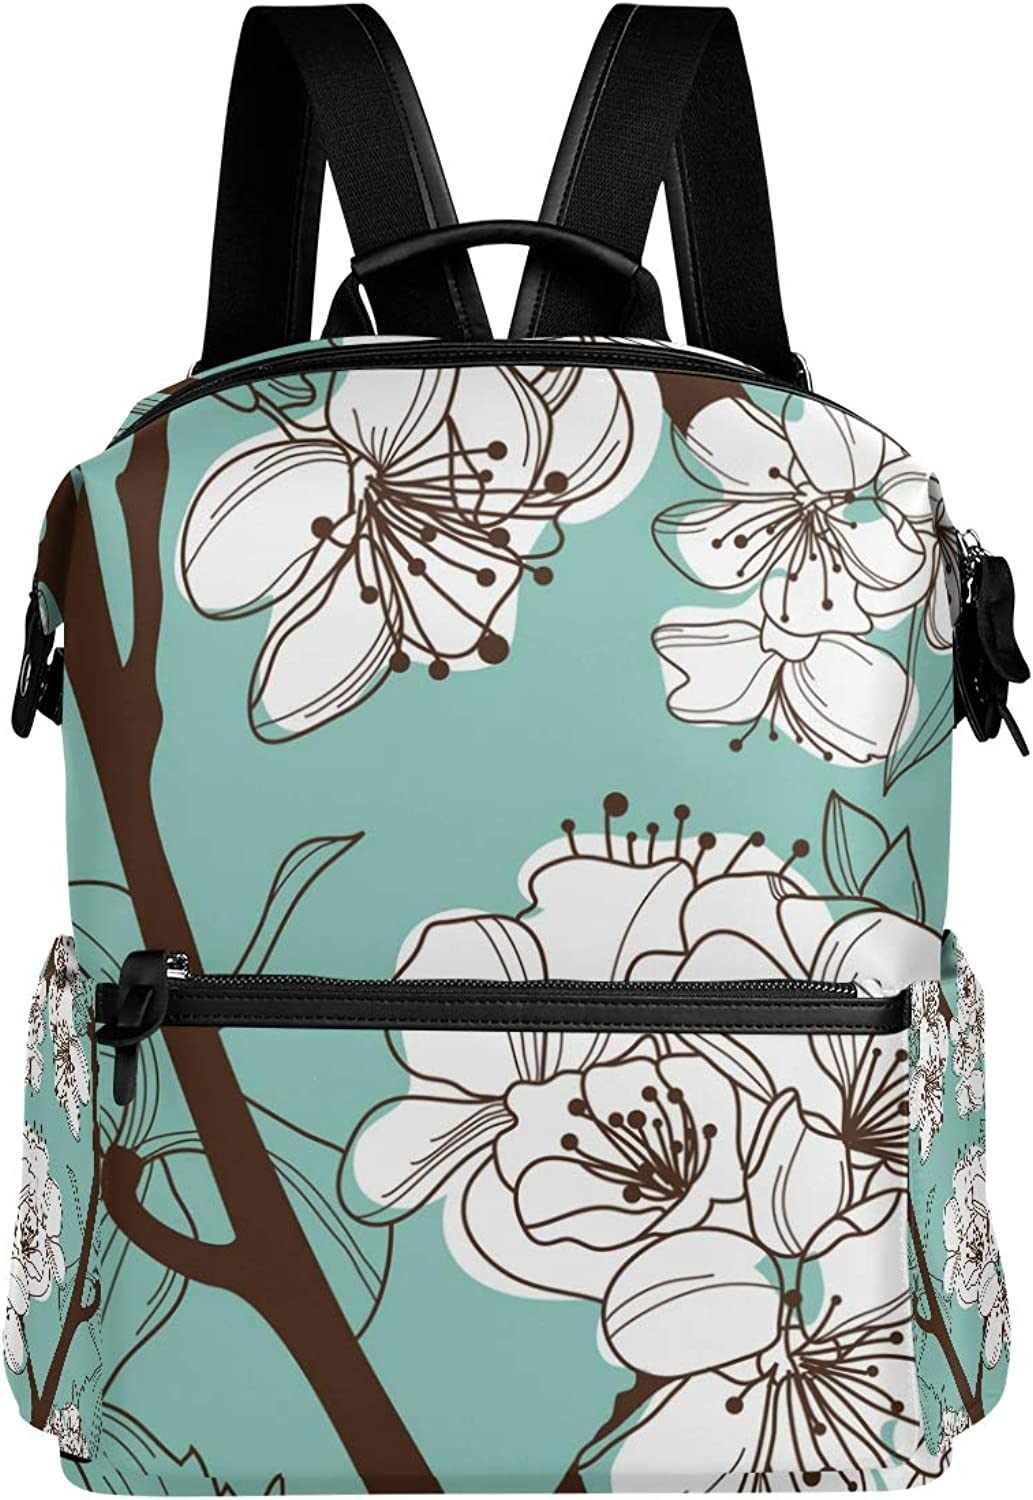 MONTOJ Hand Drawing Plum Blossom Pattern Leather Travel Bag Campus Backpack